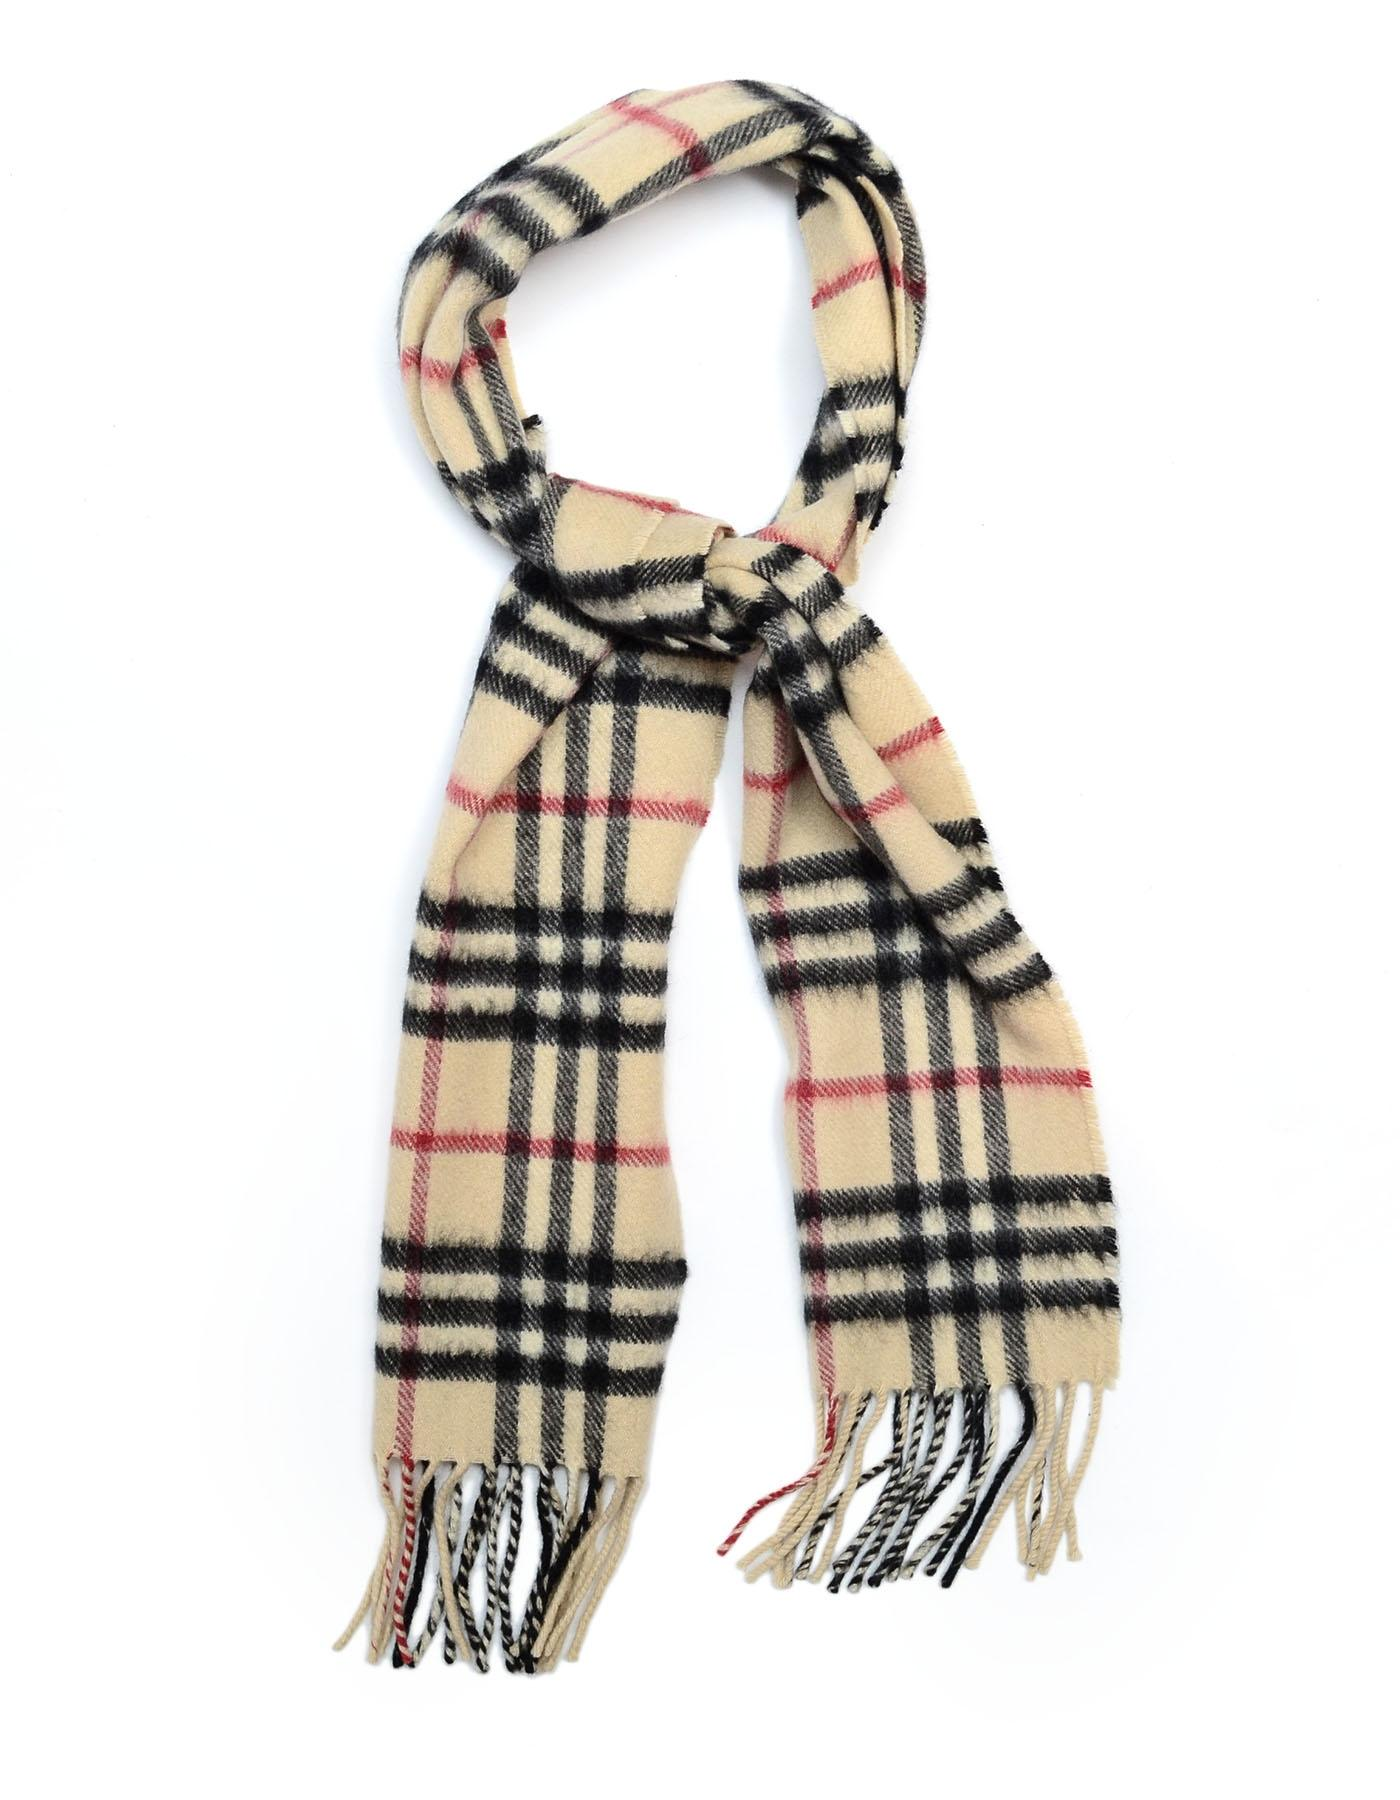 ff409280 coupon code for burberry classic cashmere scarf 6ad02 651a2; canada  burberry scarf obsessed treat yourself at tradesy 3e3bf 0811a